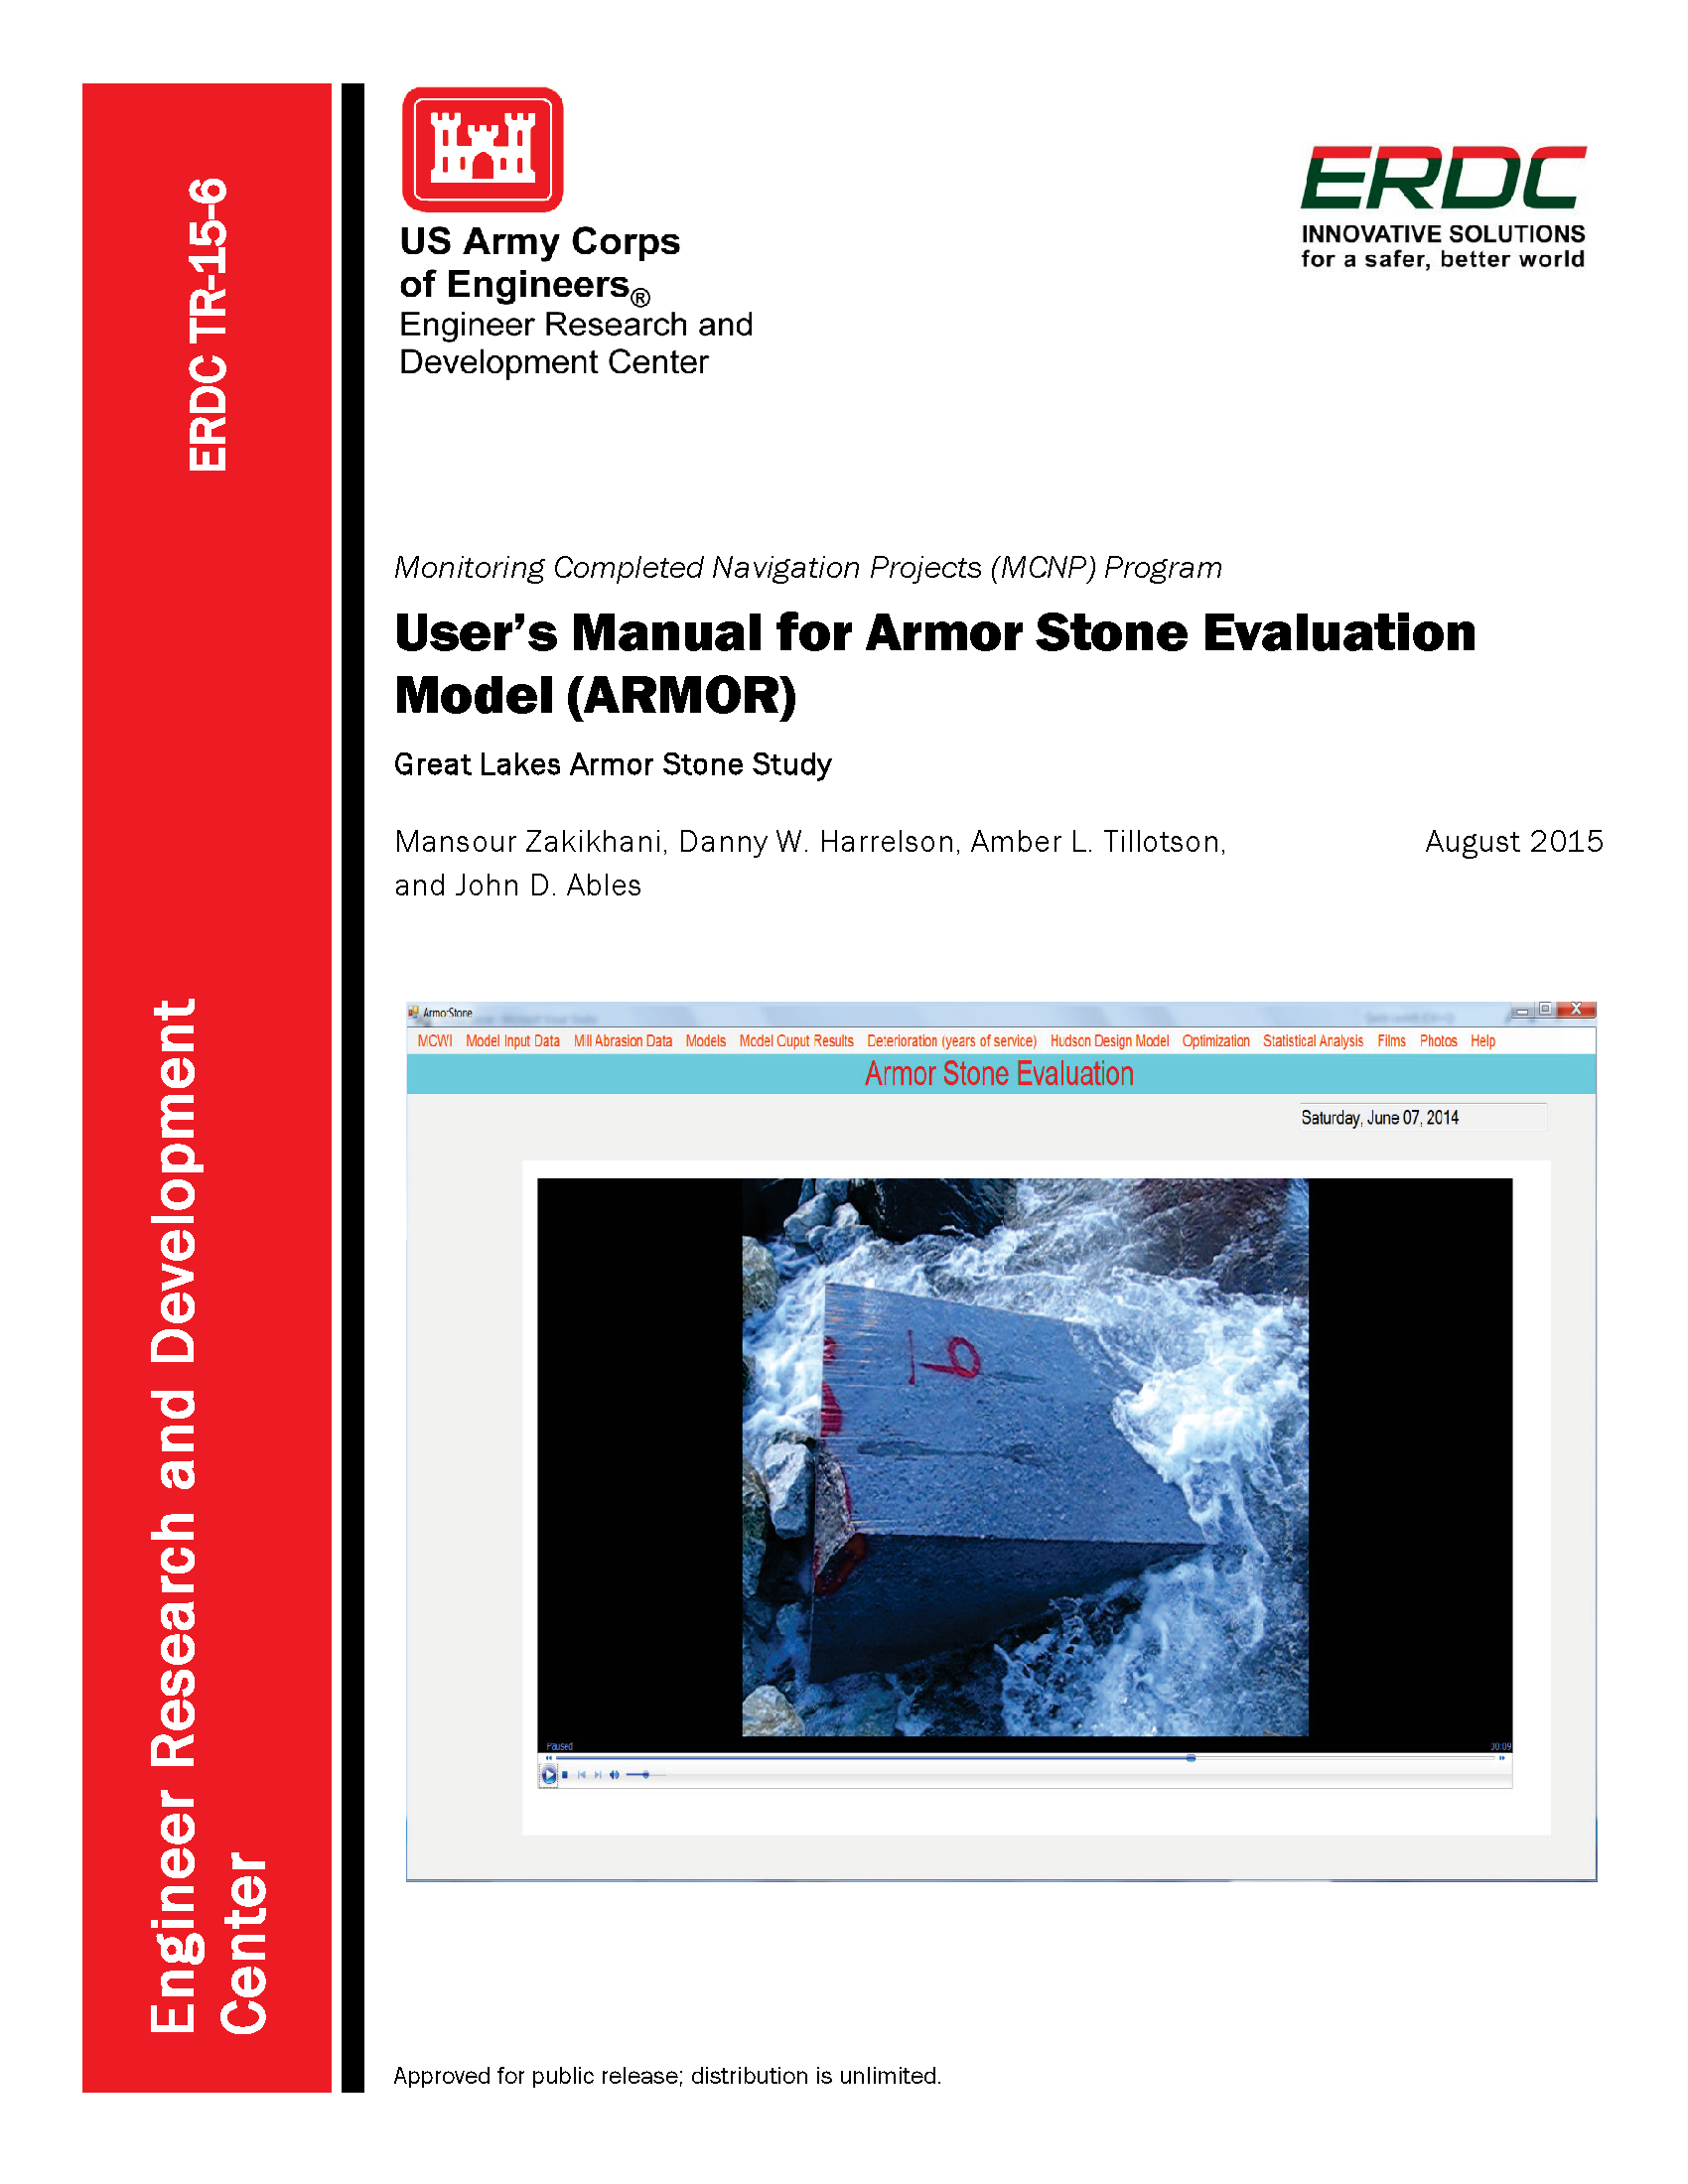 User S Manual For Armor Stone Evaluation Model Armor Great Lakes Armor Stone Study Technical Reports Usace Digital Library